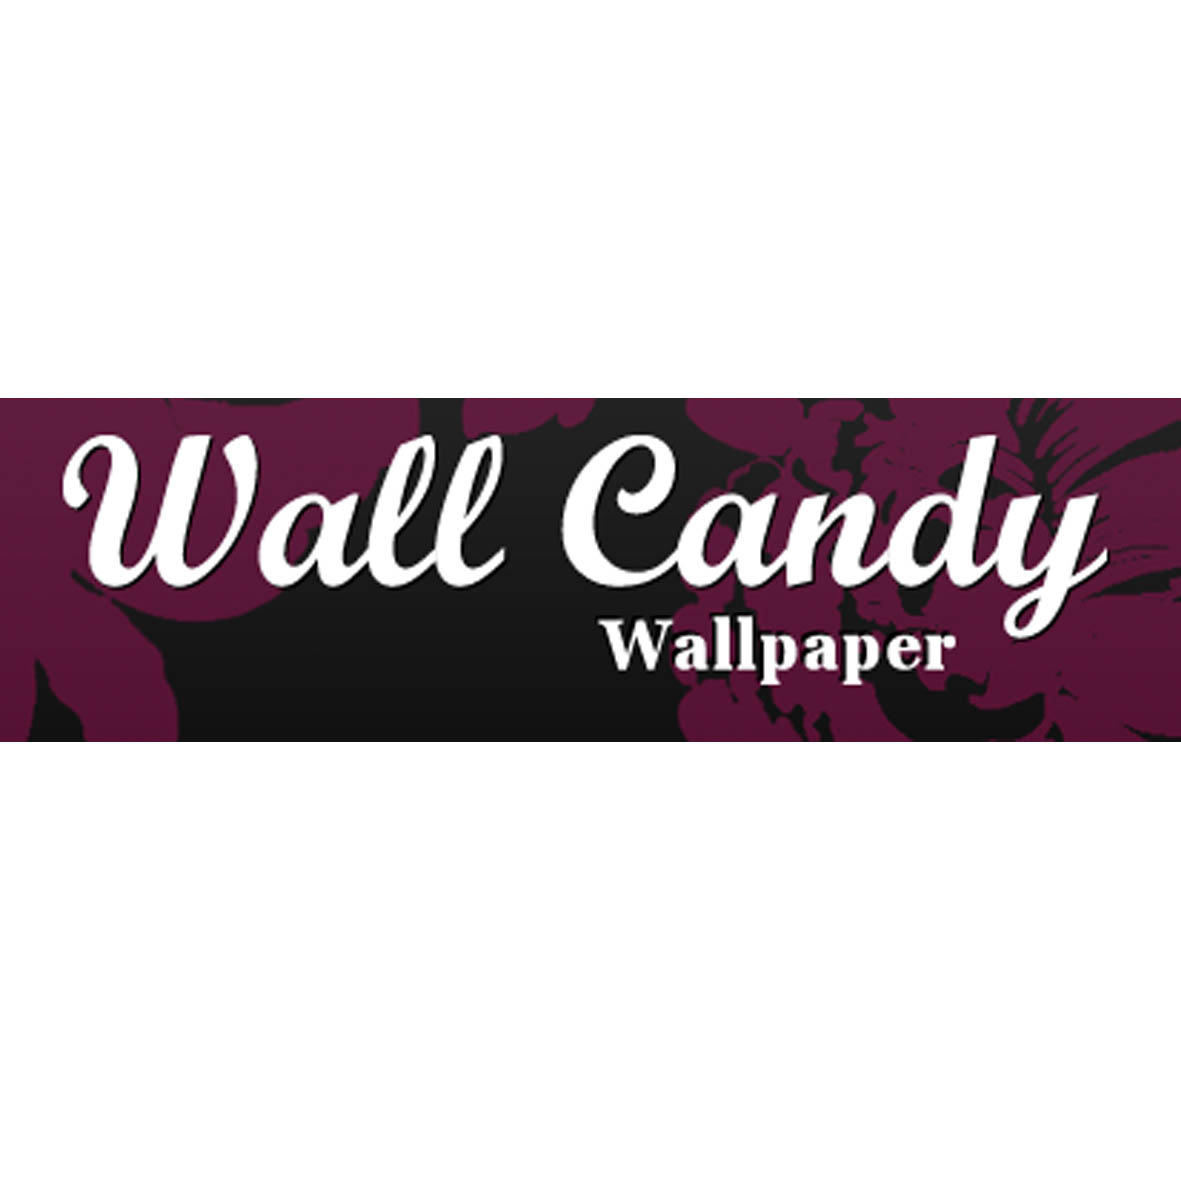 Wall Candy Wallpaper - Perth